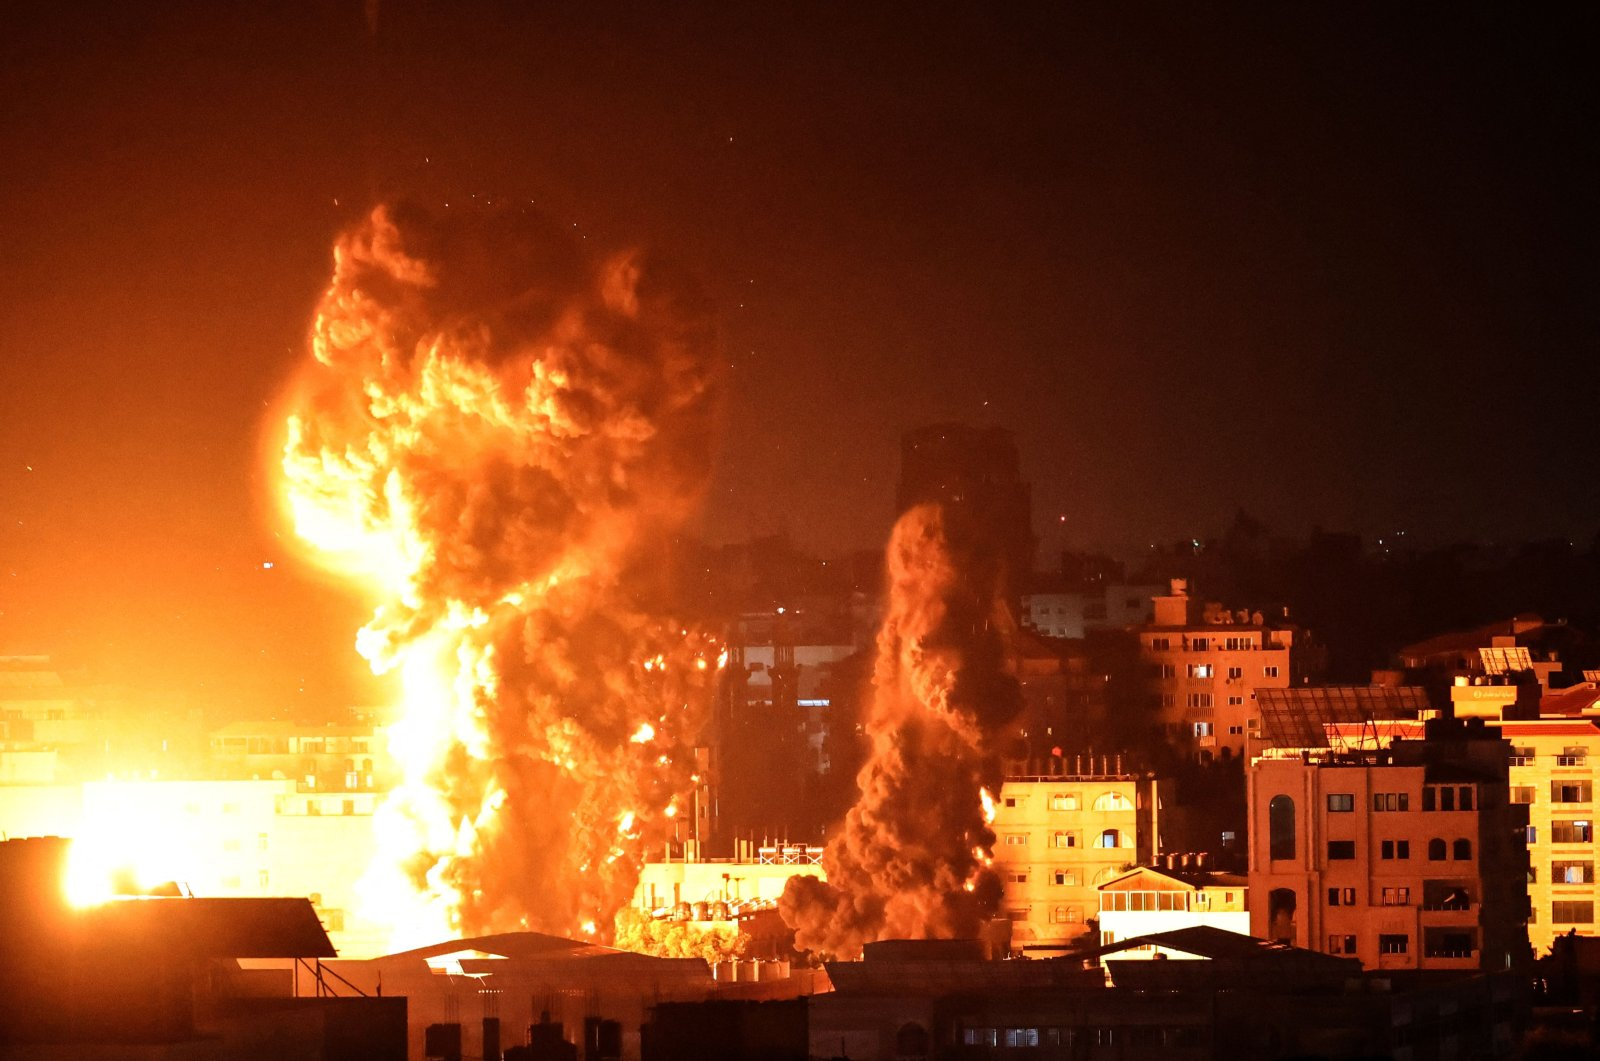 Fire and smoke rise above buildings in Gaza City as Israeli warplanes target the Palestinian enclave, Gaza City, Palestine, early on May 17, 2021. (AFP Photo)